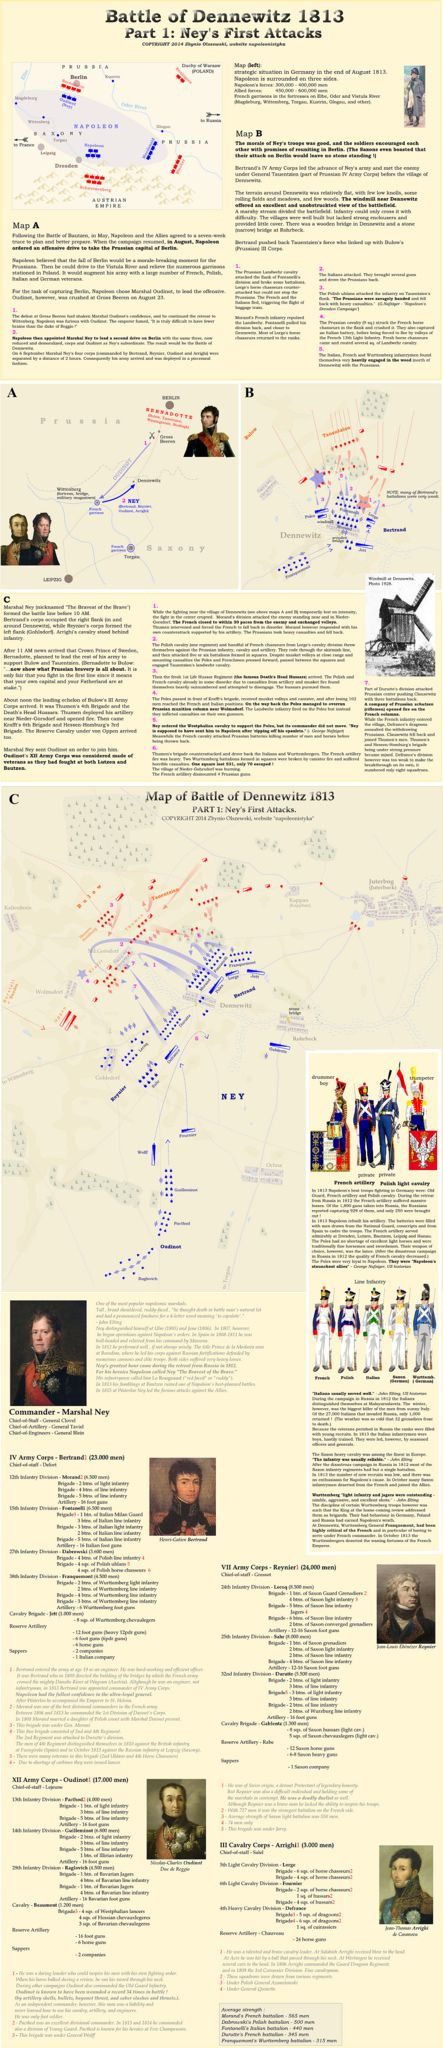 Battle of Dennewitz 1813 click the link